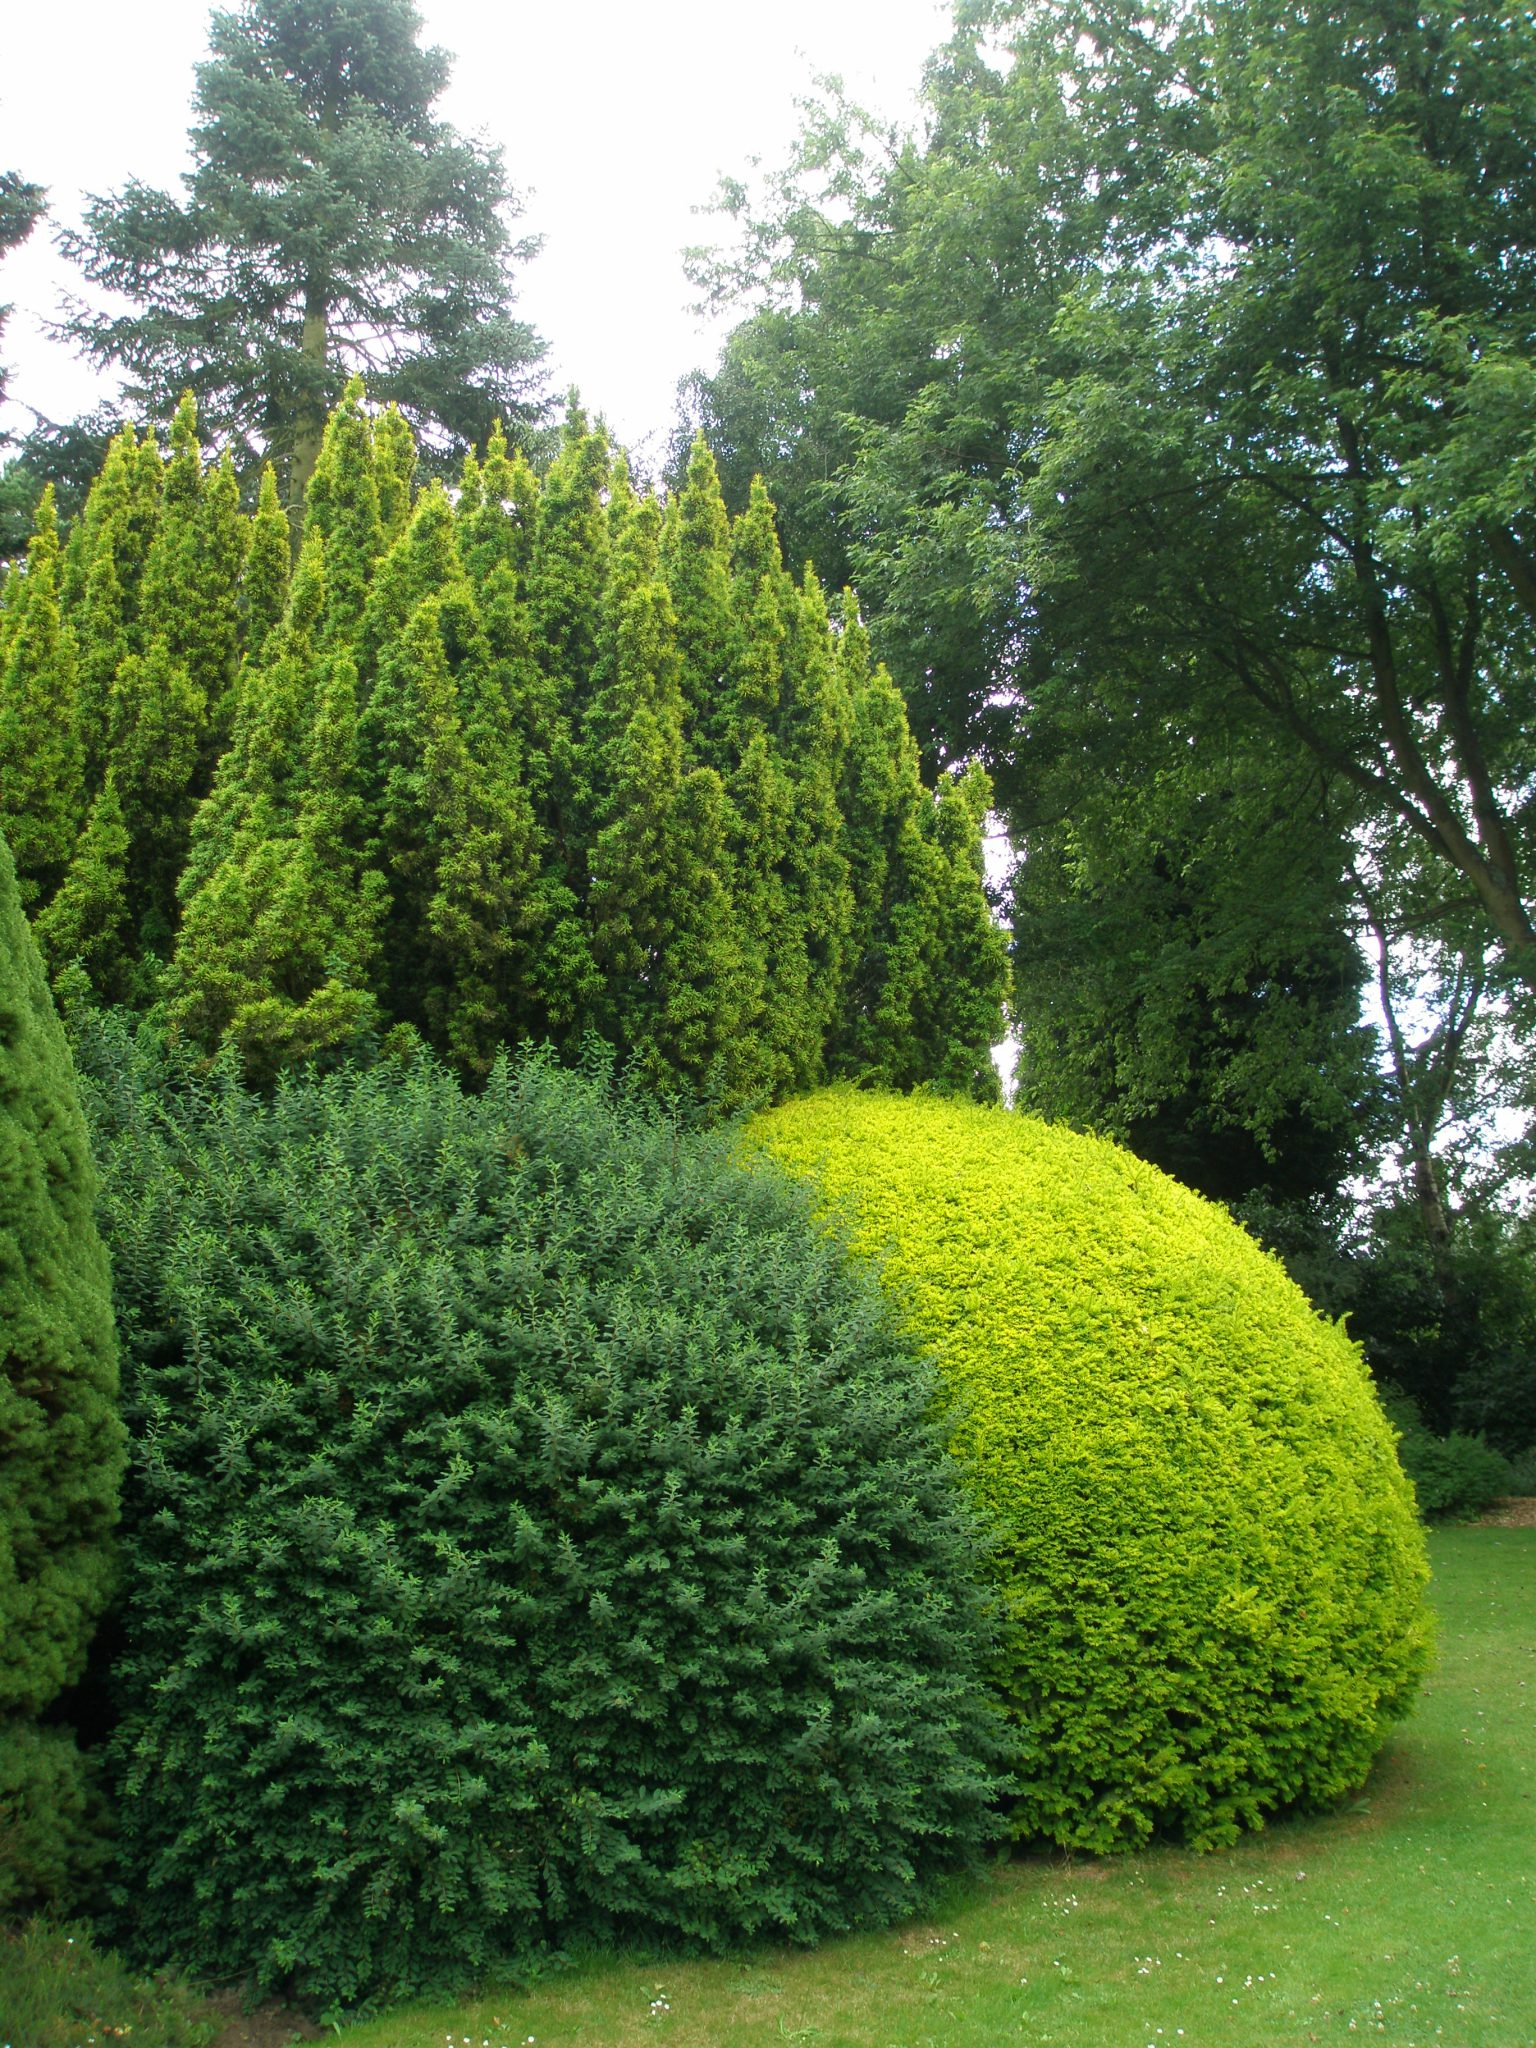 Precisely-clipped Conifers in the rear portion of the Garden